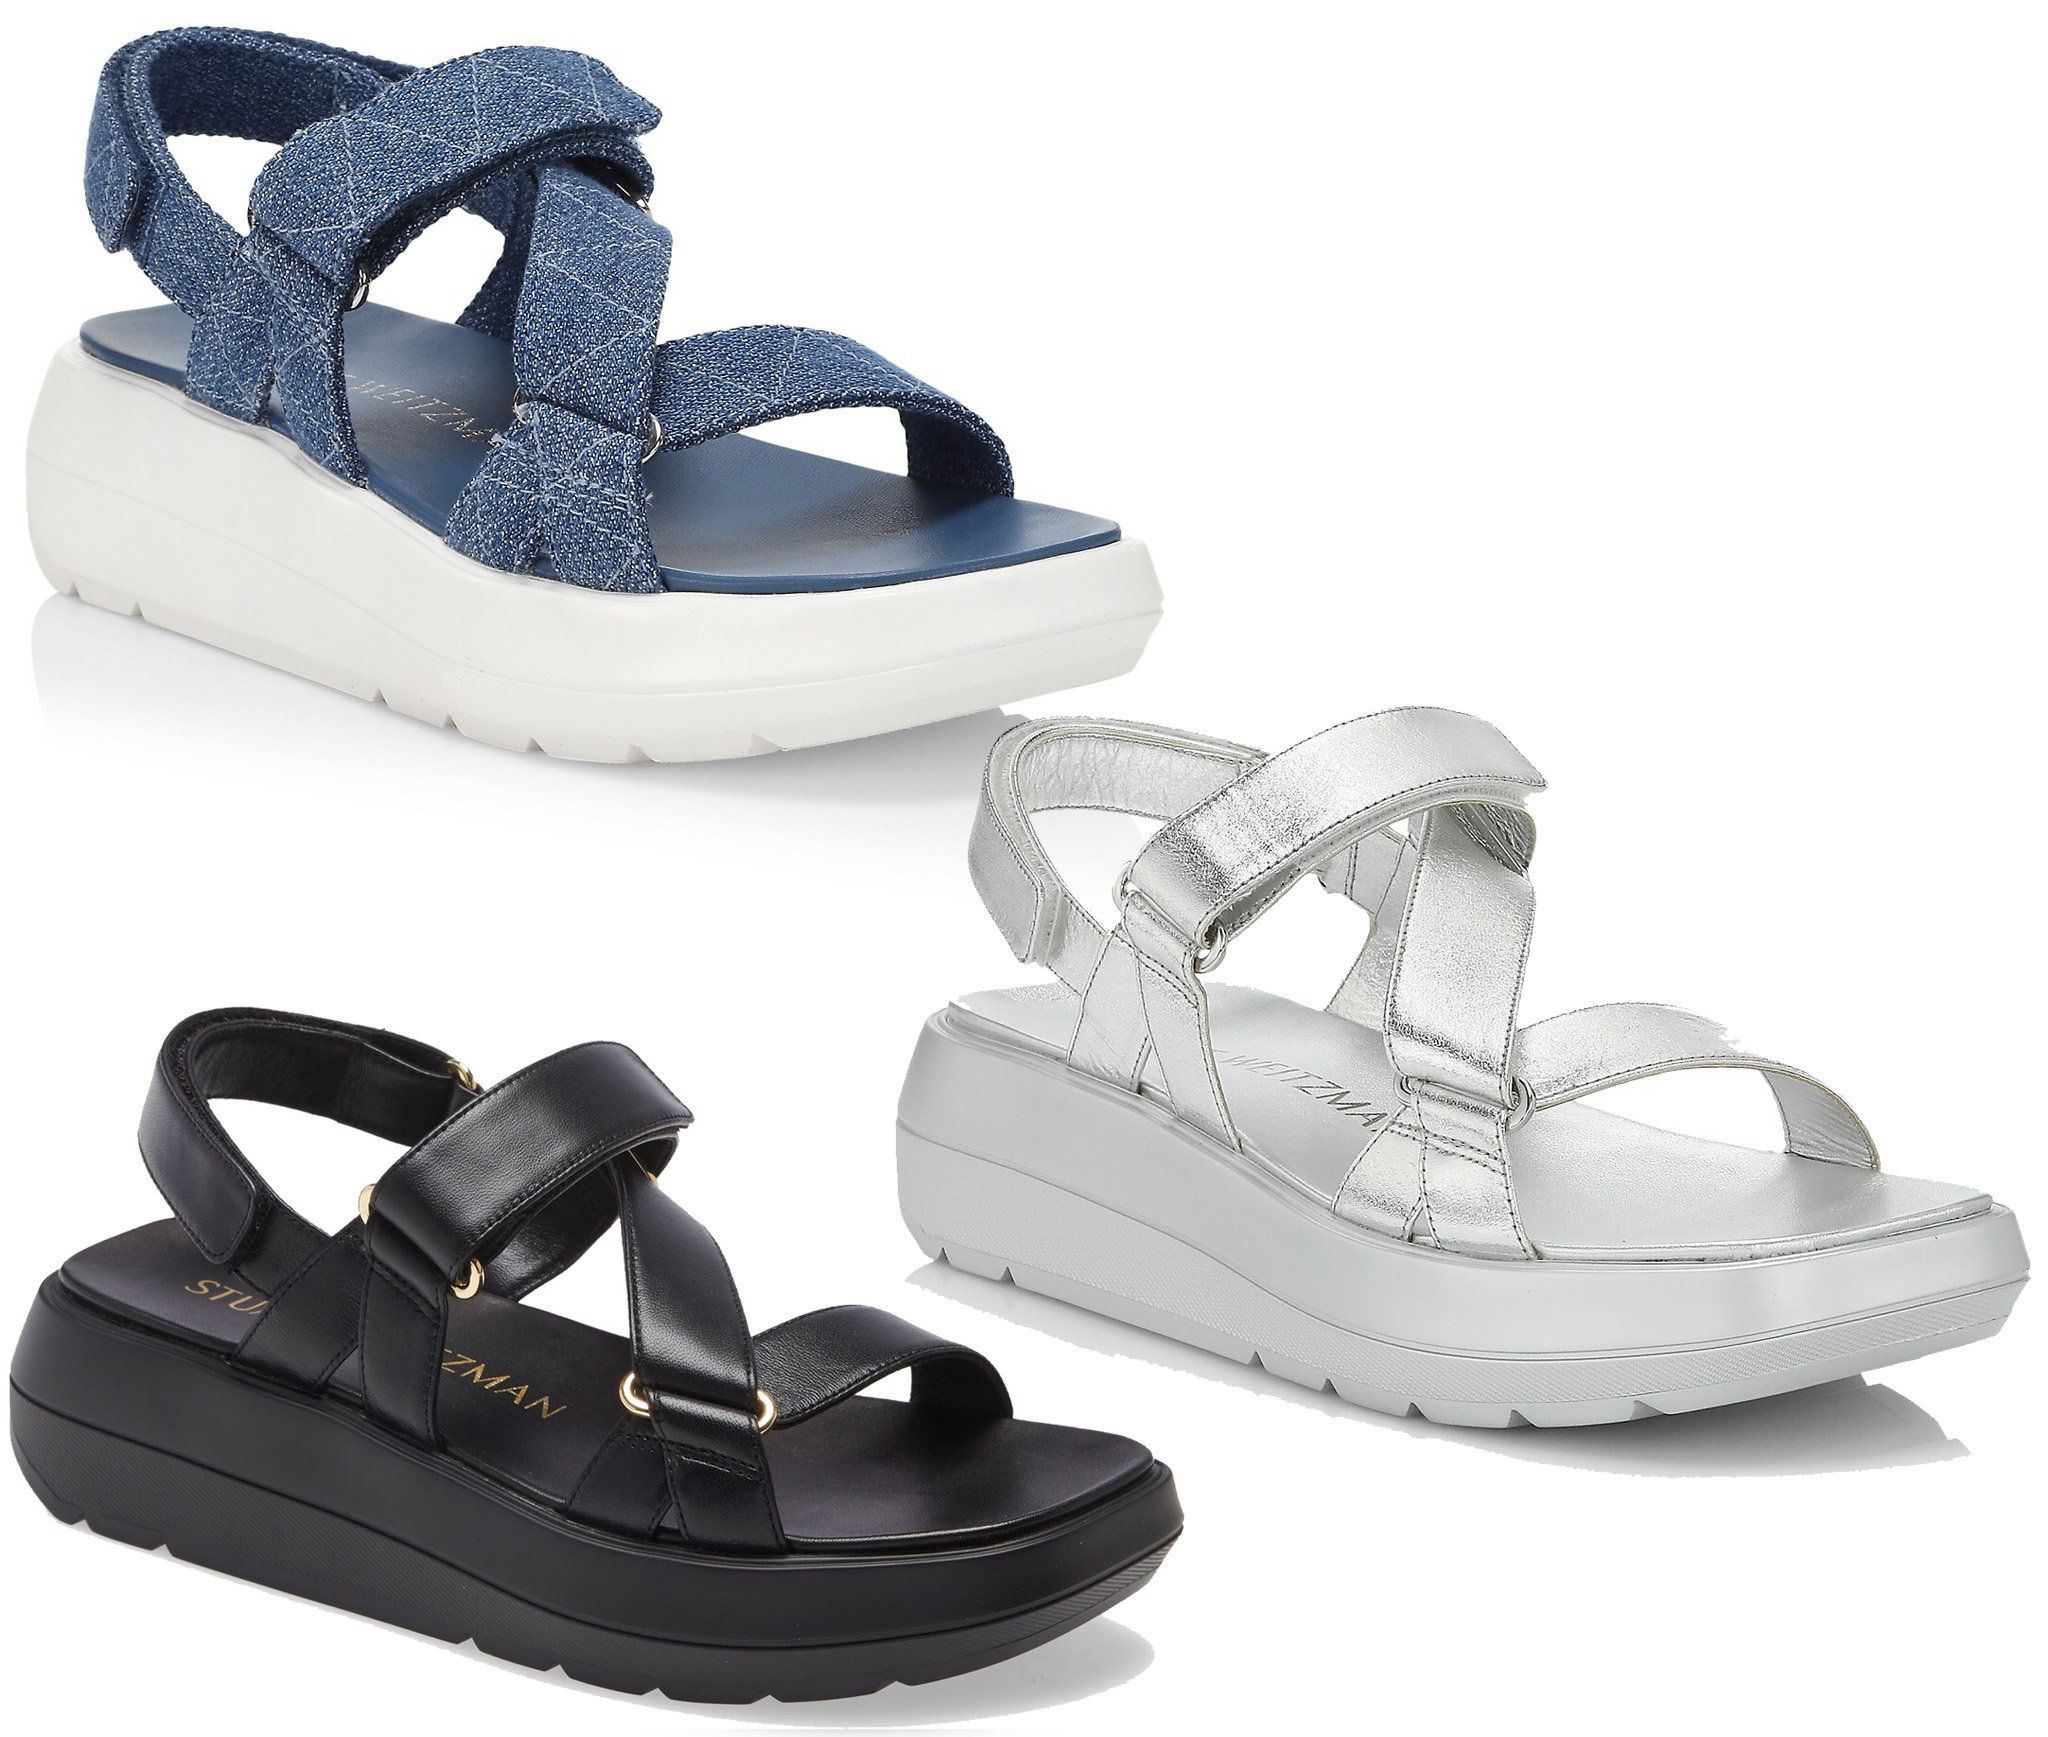 Add a touch of sporty chic vibe to your look with these strappy chunky platform sandals